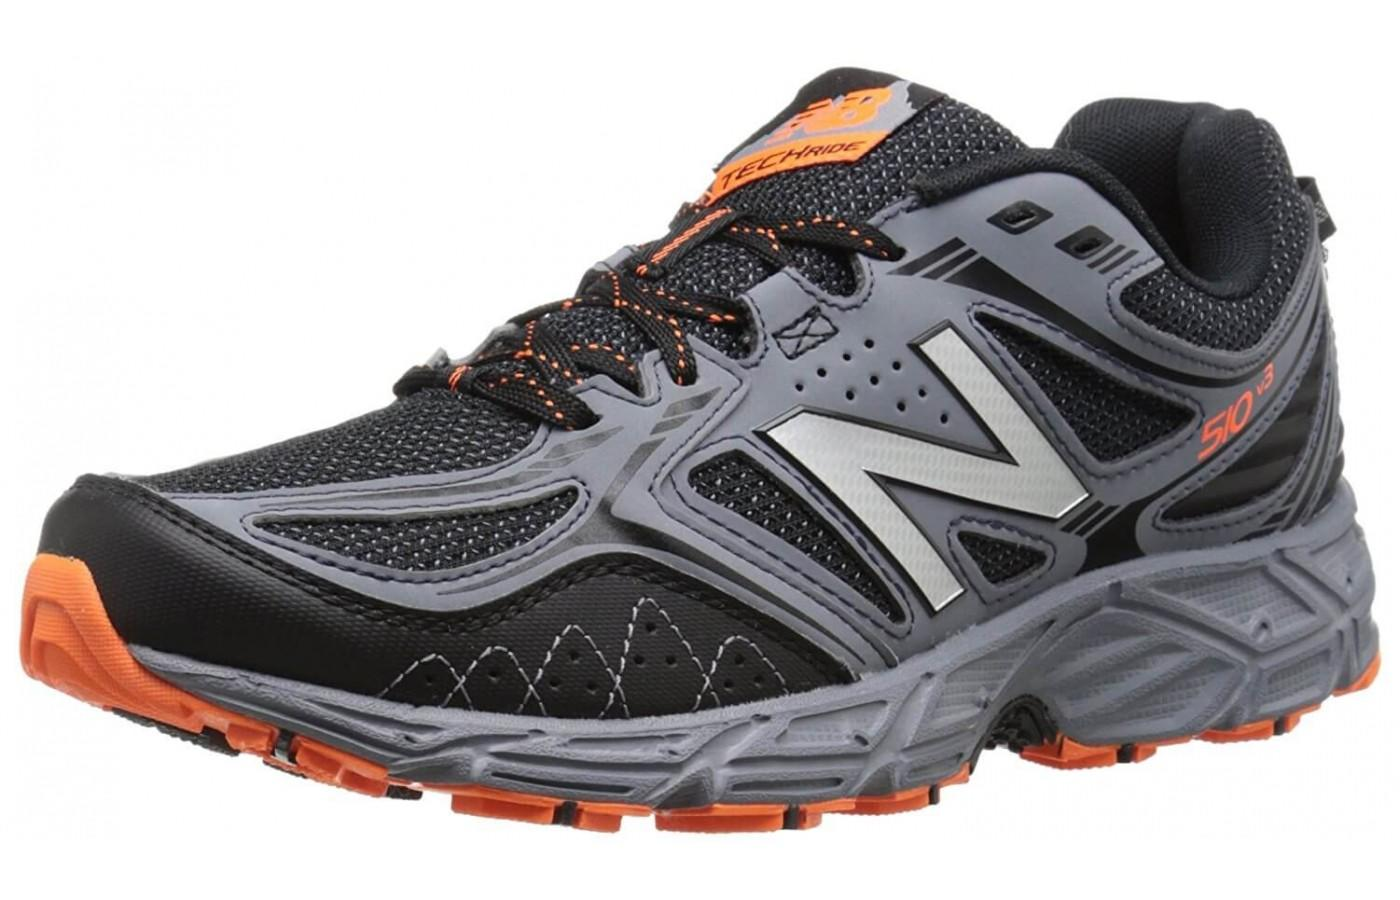 Runners loved the aggressive, rugged look of the New Balance 510v3 Trail.